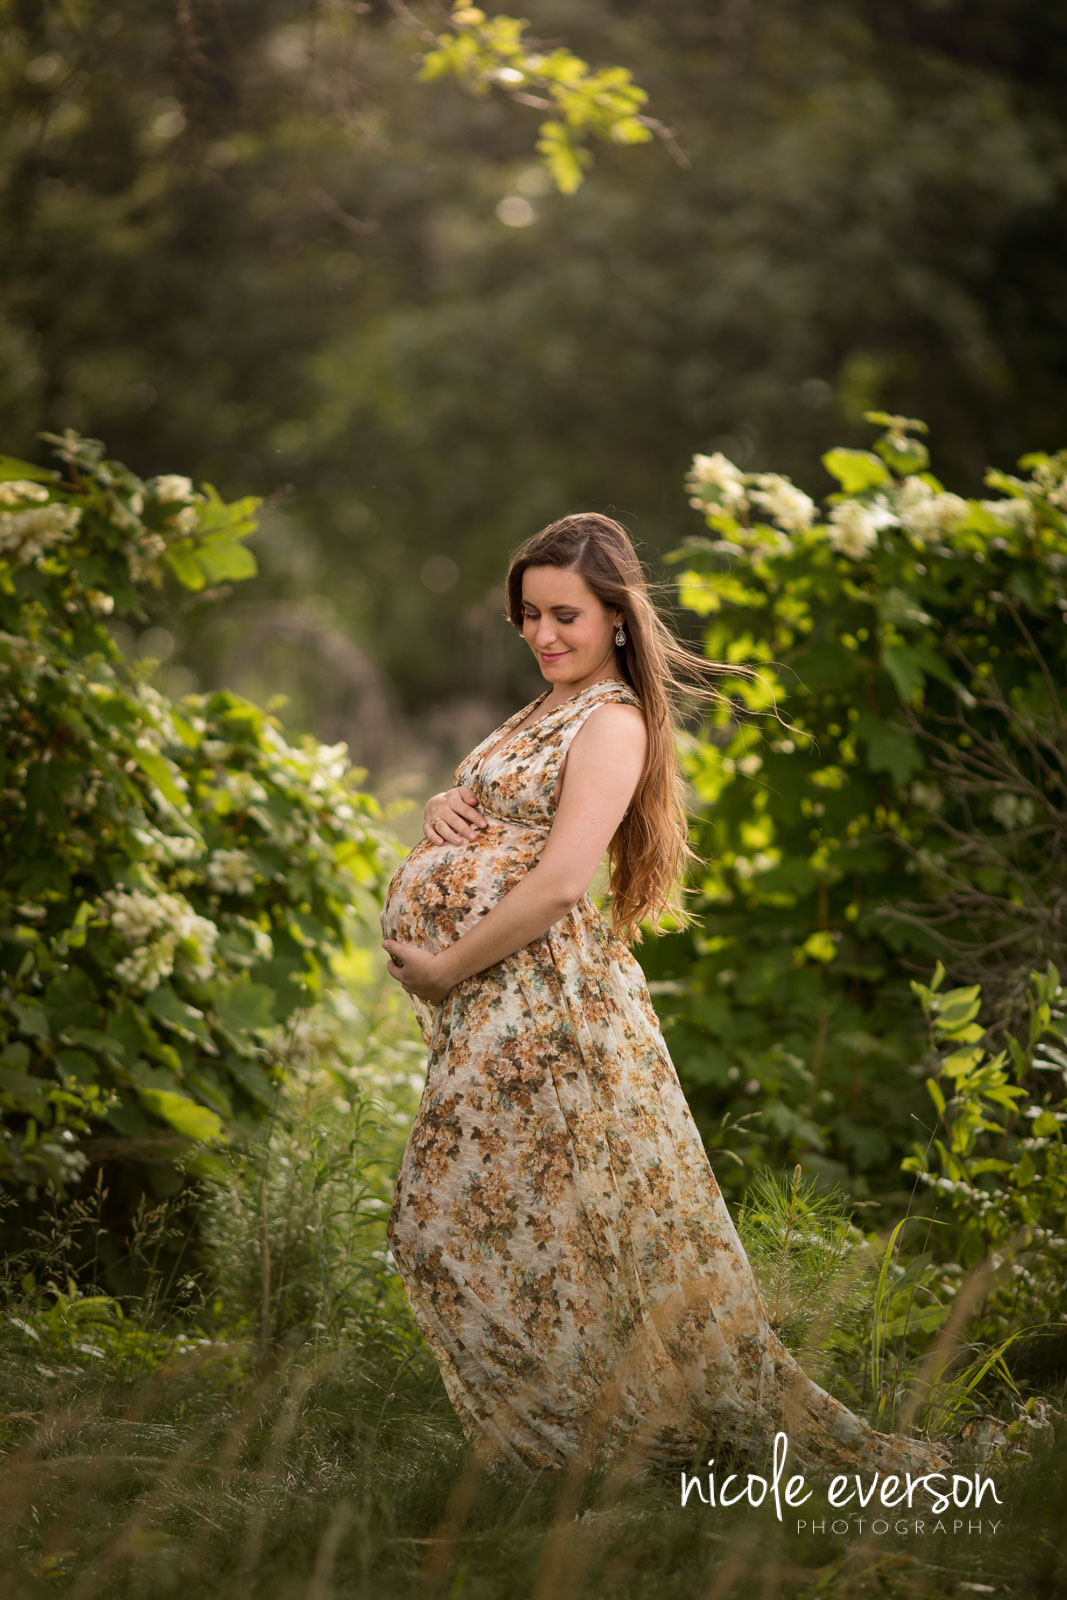 maternity poses portrait outdoor pose nicole mom everson posing favorite awkward belly twist leg diverse let down create mine another